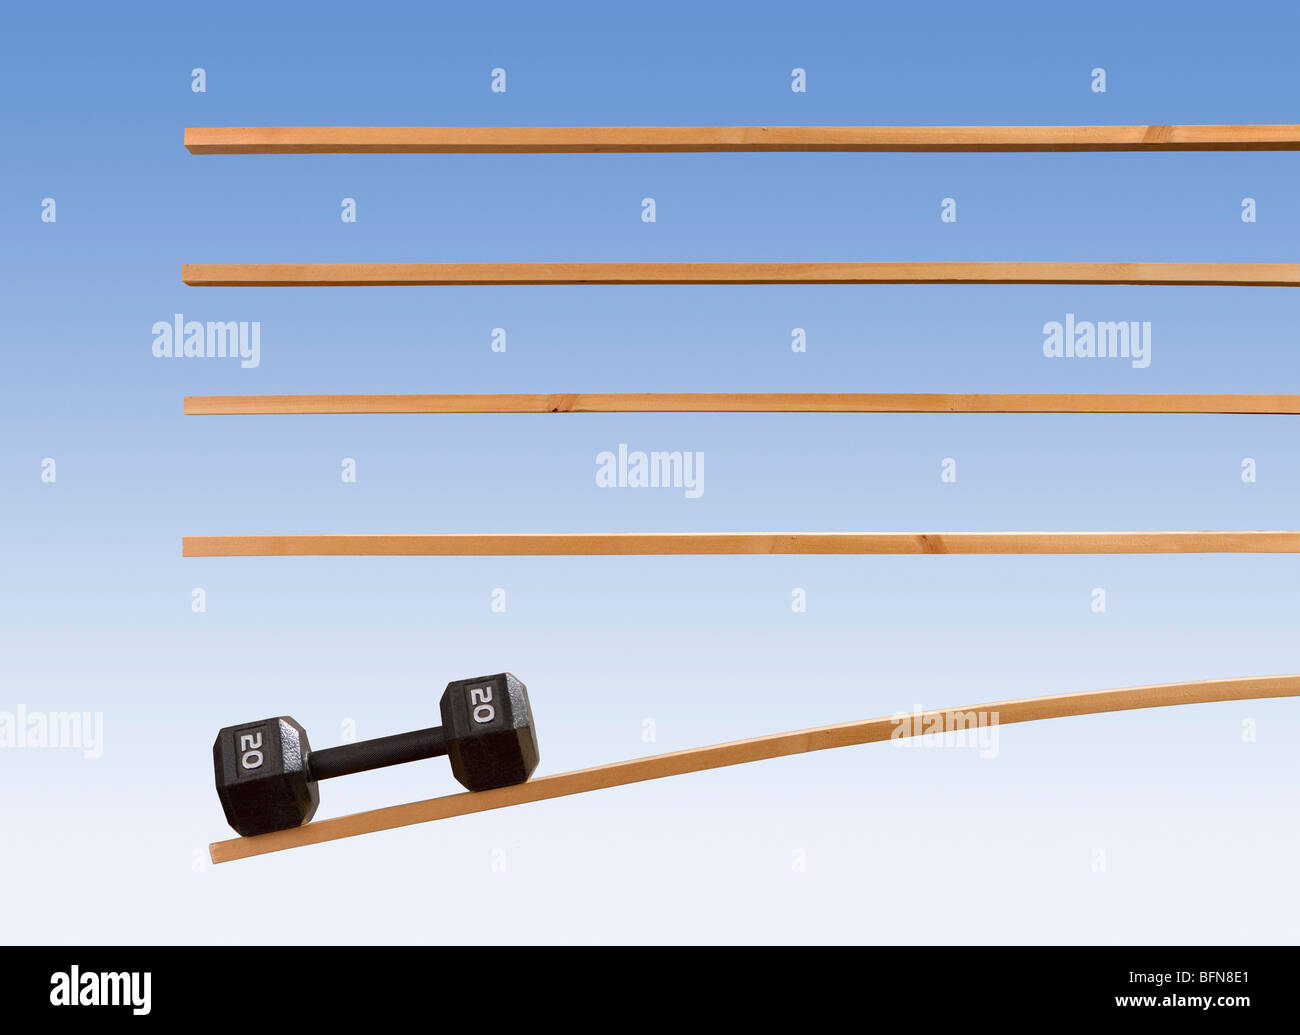 Gravity demonstration using strips of wood and a 20 pound dumbell or weight. - Stock Image